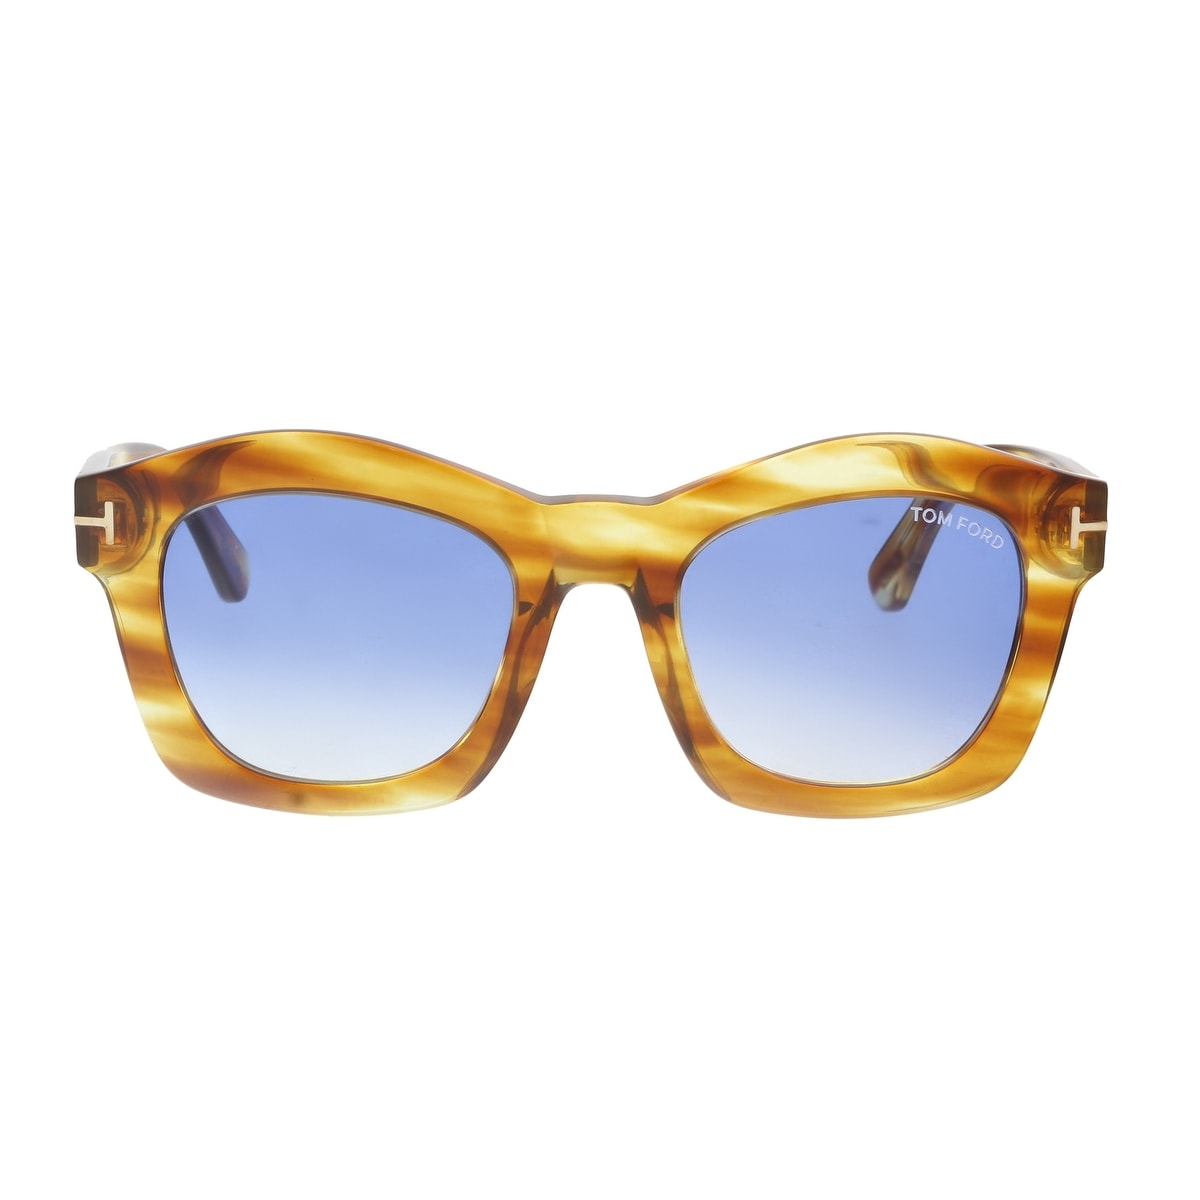 60540aa7e0a64 Shop Tom Ford FT0431 S 41W GRETA Amber Square Sunglasses - 50-21-140 - Free  Shipping Today - Overstock - 19223189